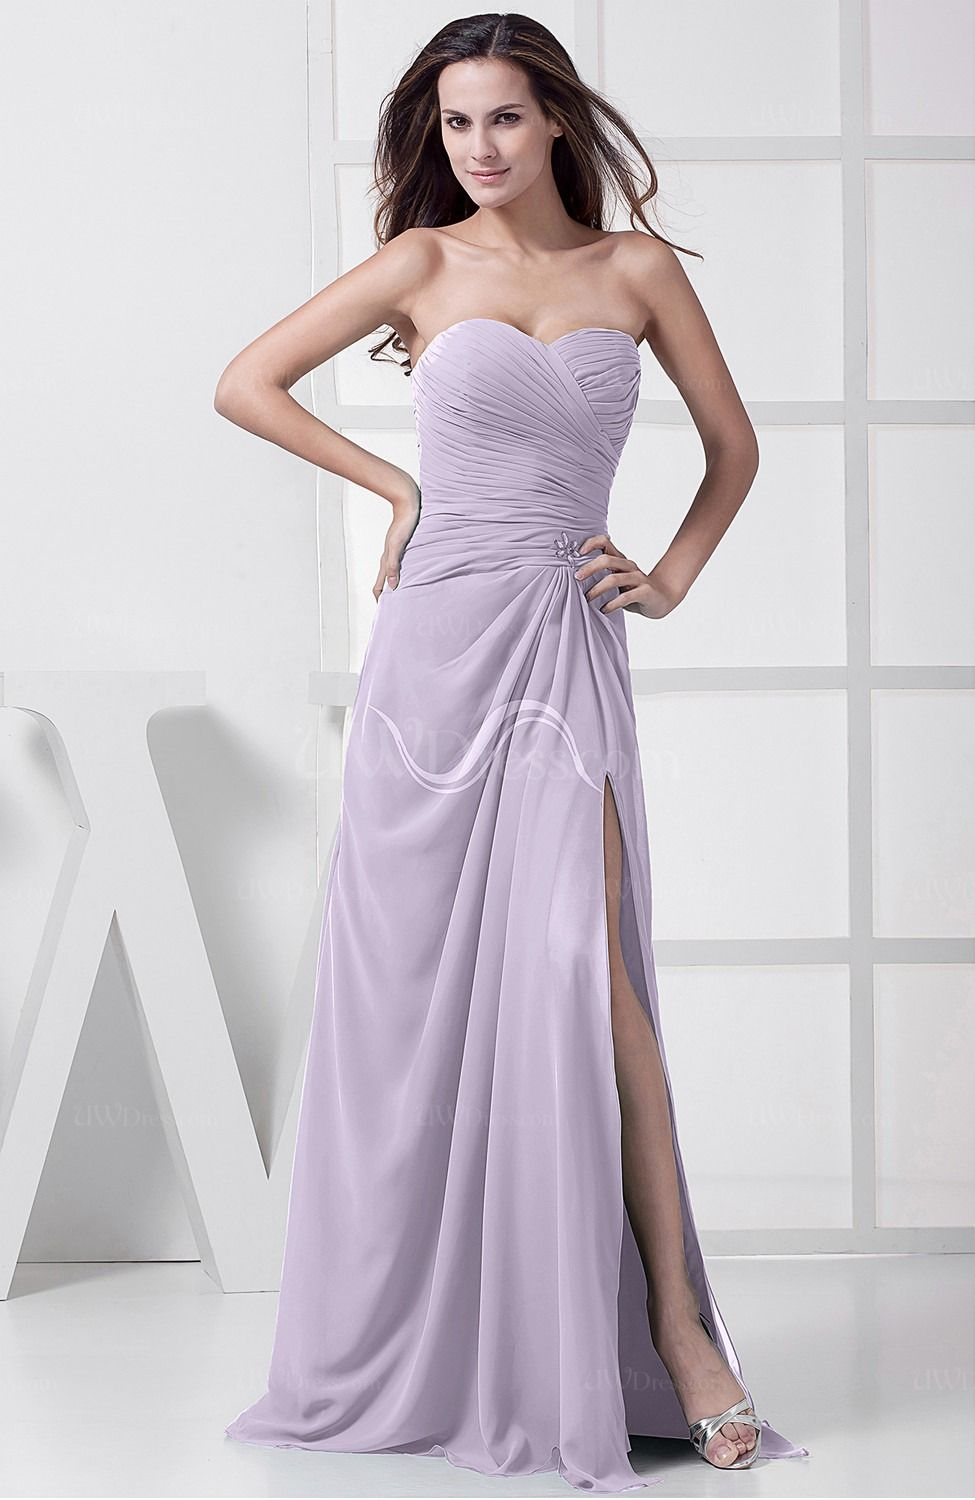 dresses easter perfect shade in pin the pastel rose kelsey purple bridesmaid light